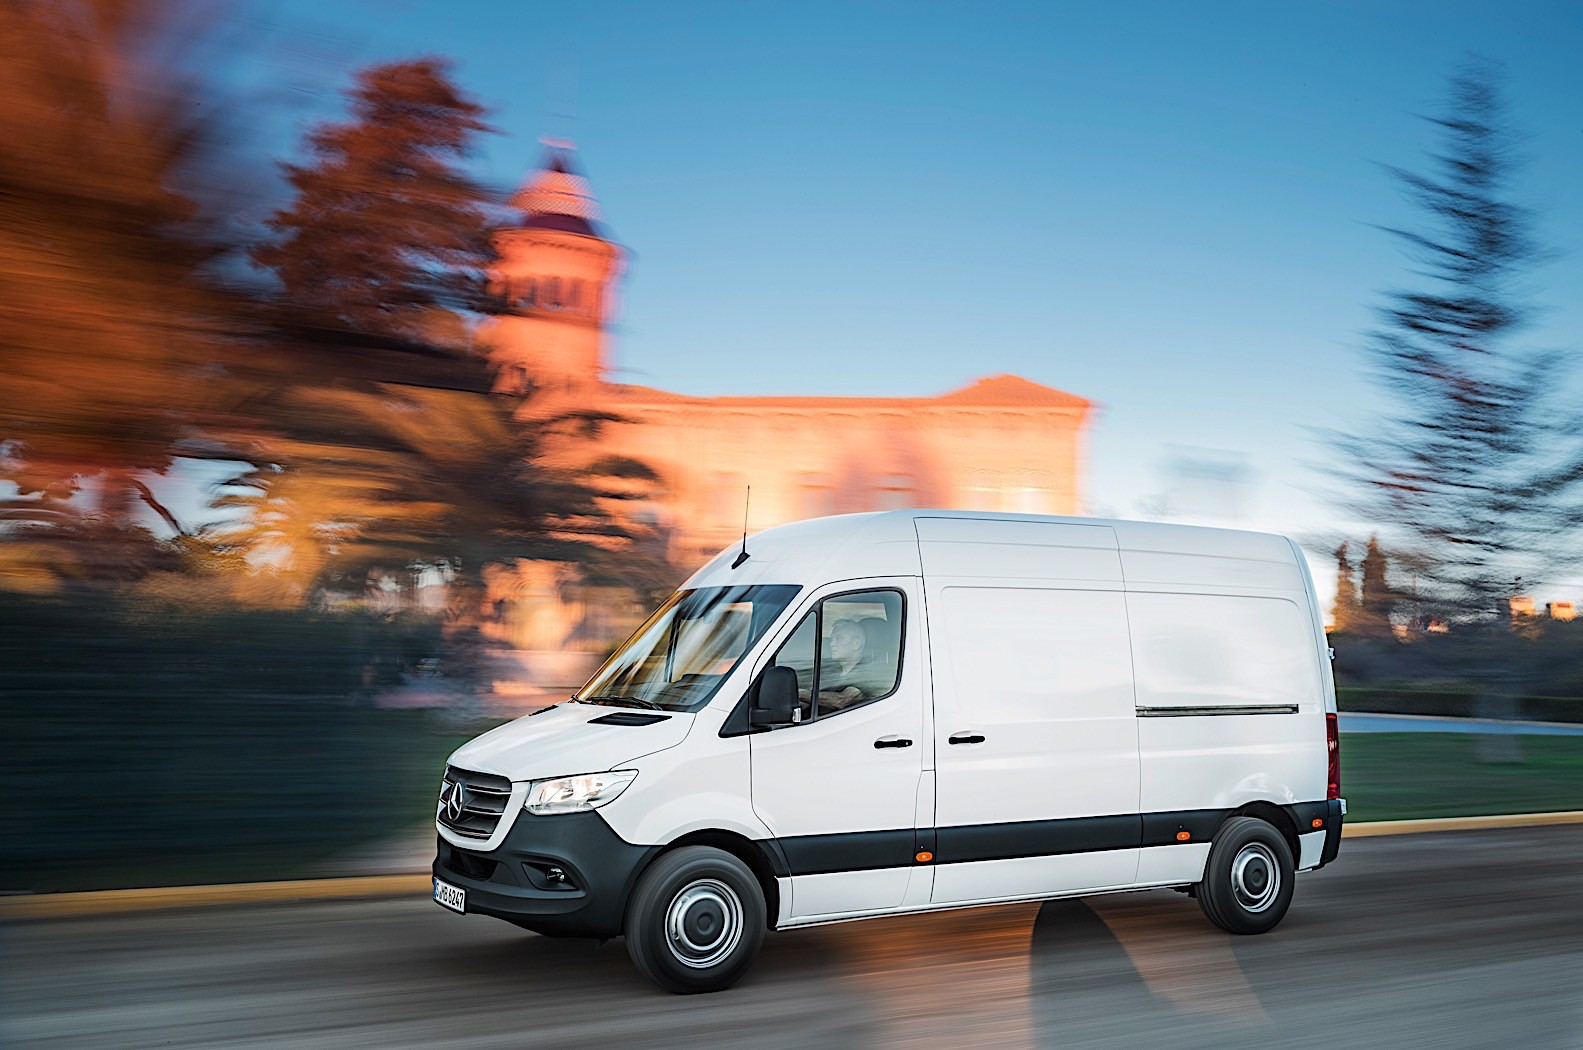 New Mercedes Suv >> Mercedes-Benz Sprinter-based RV Reviewed by AutoBlog - autoevolution